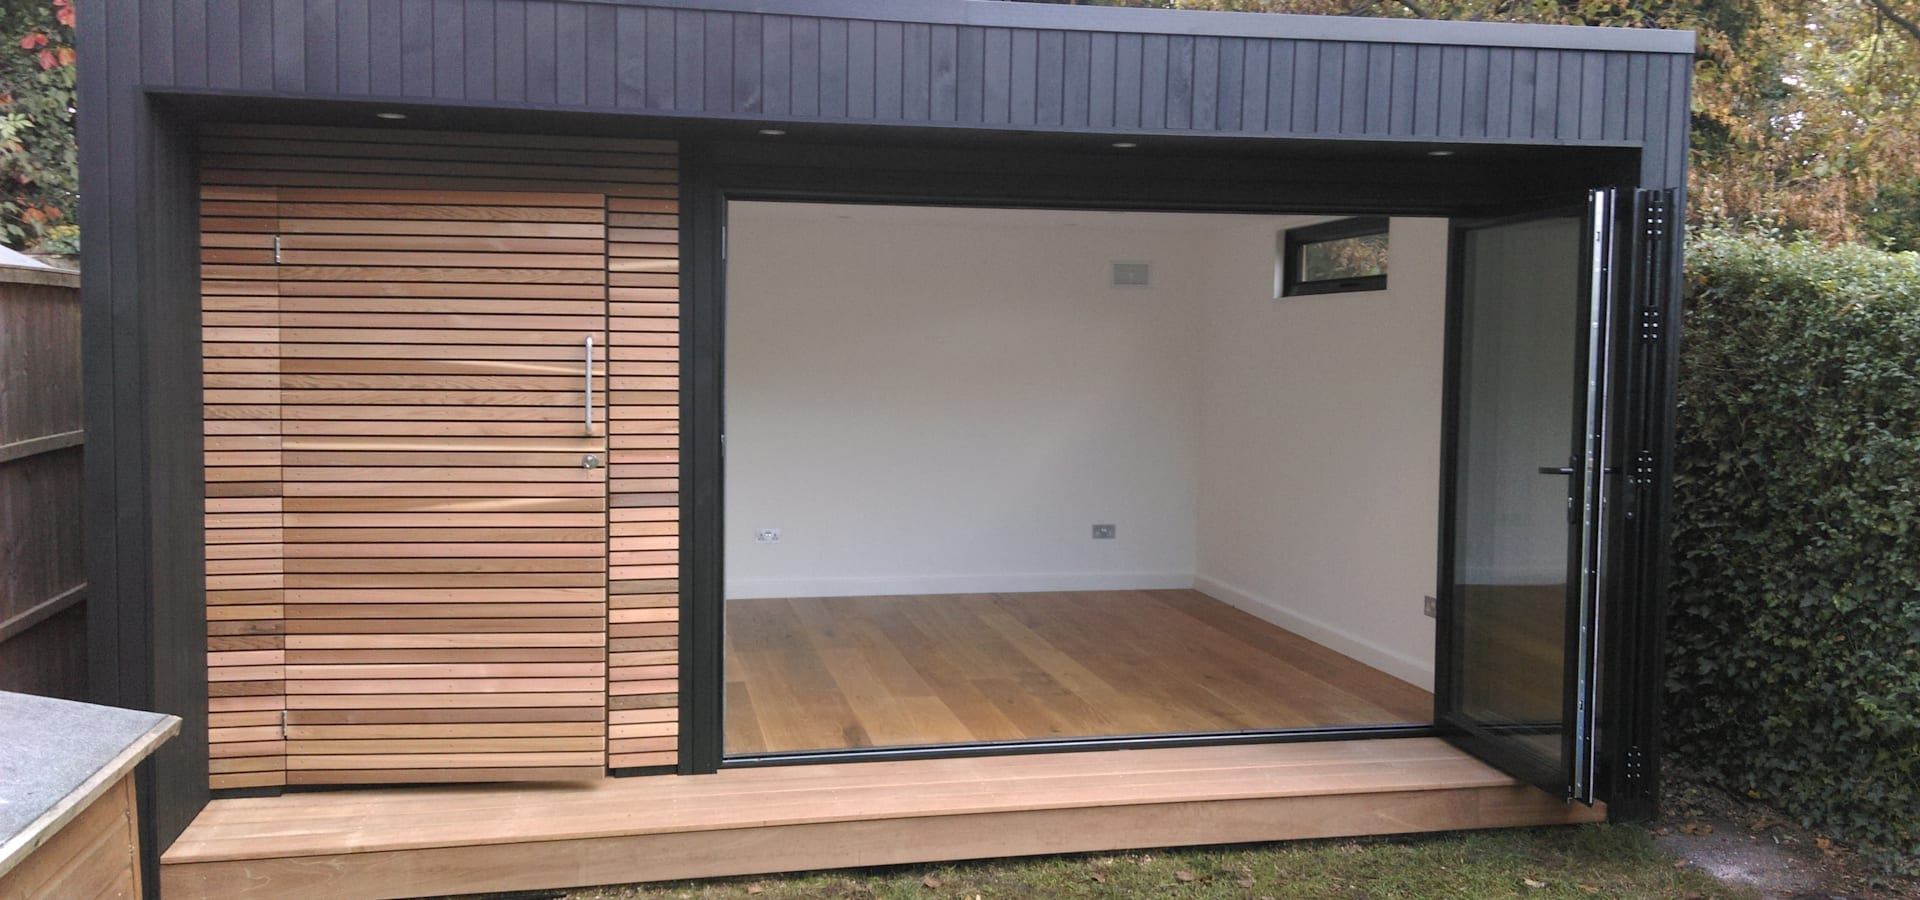 Garden room in queens park london by office in my garden for Modern garden rooms london